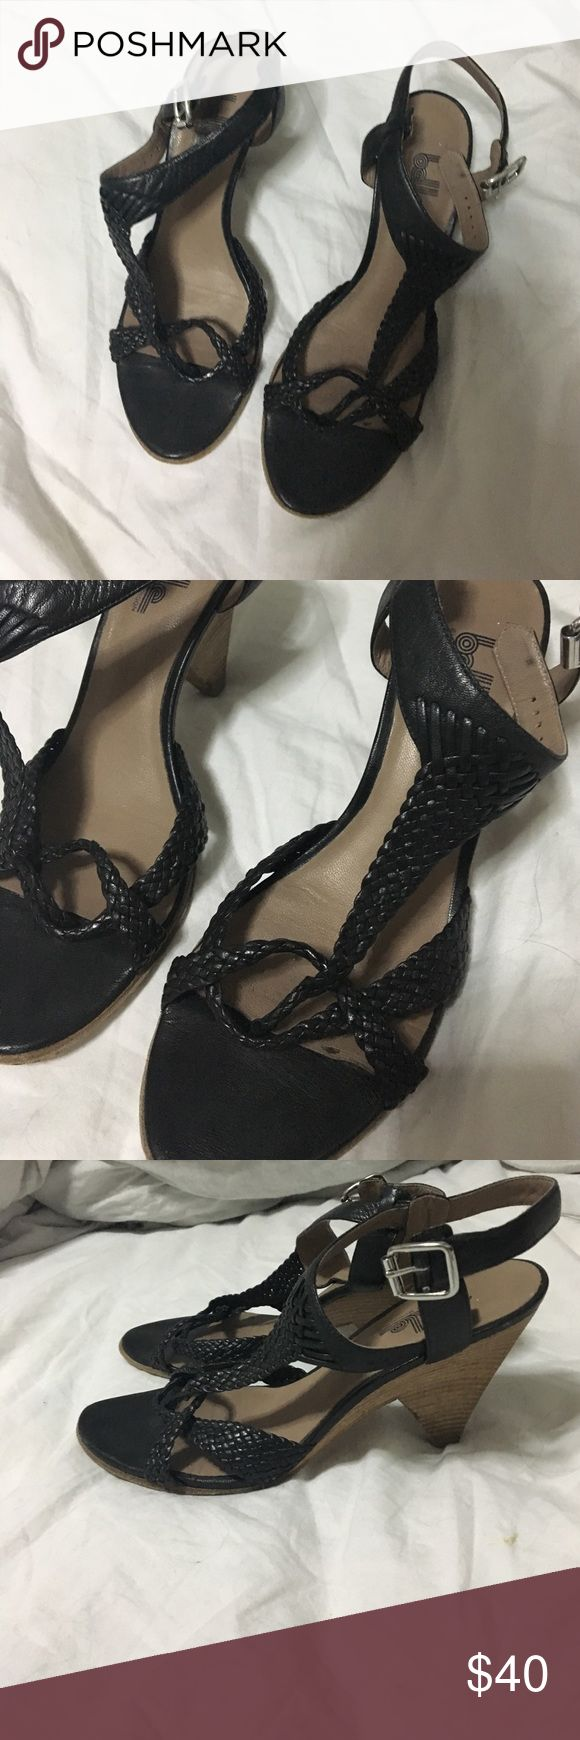 Belle by Sigerson Morrison heels Heeled sandals from Belle by Sigerson Morrison in a black braided leather. Perfect for summer! Minor wear from use. Belle by Sigerson Morrison Shoes Sandals